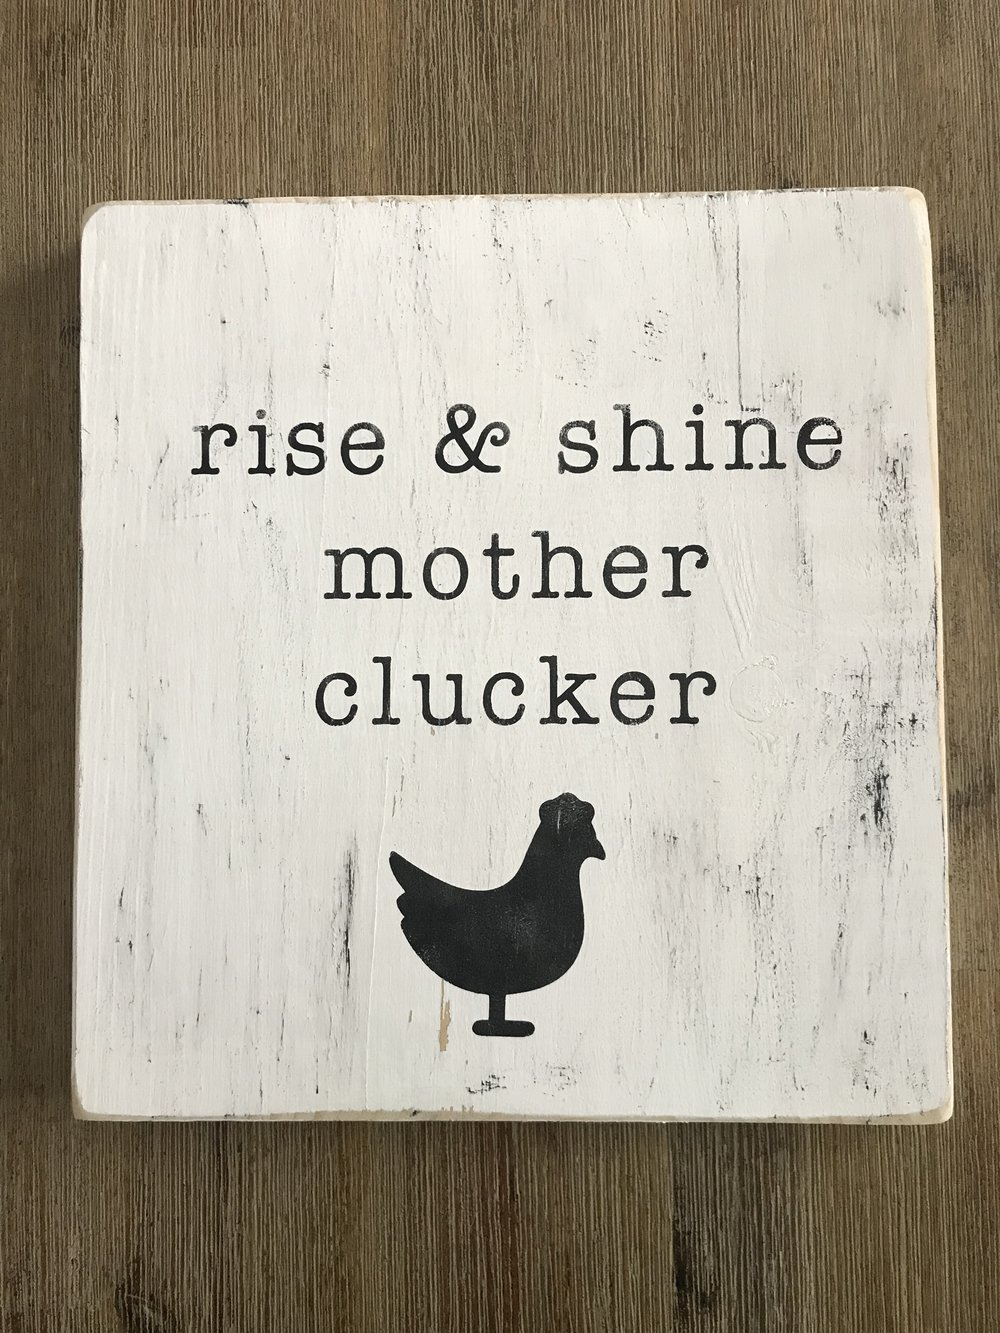 10x10 PINE RISE & SHINE MOTHER CLUCKER WHITE WITH BLACK LETTERING - $15